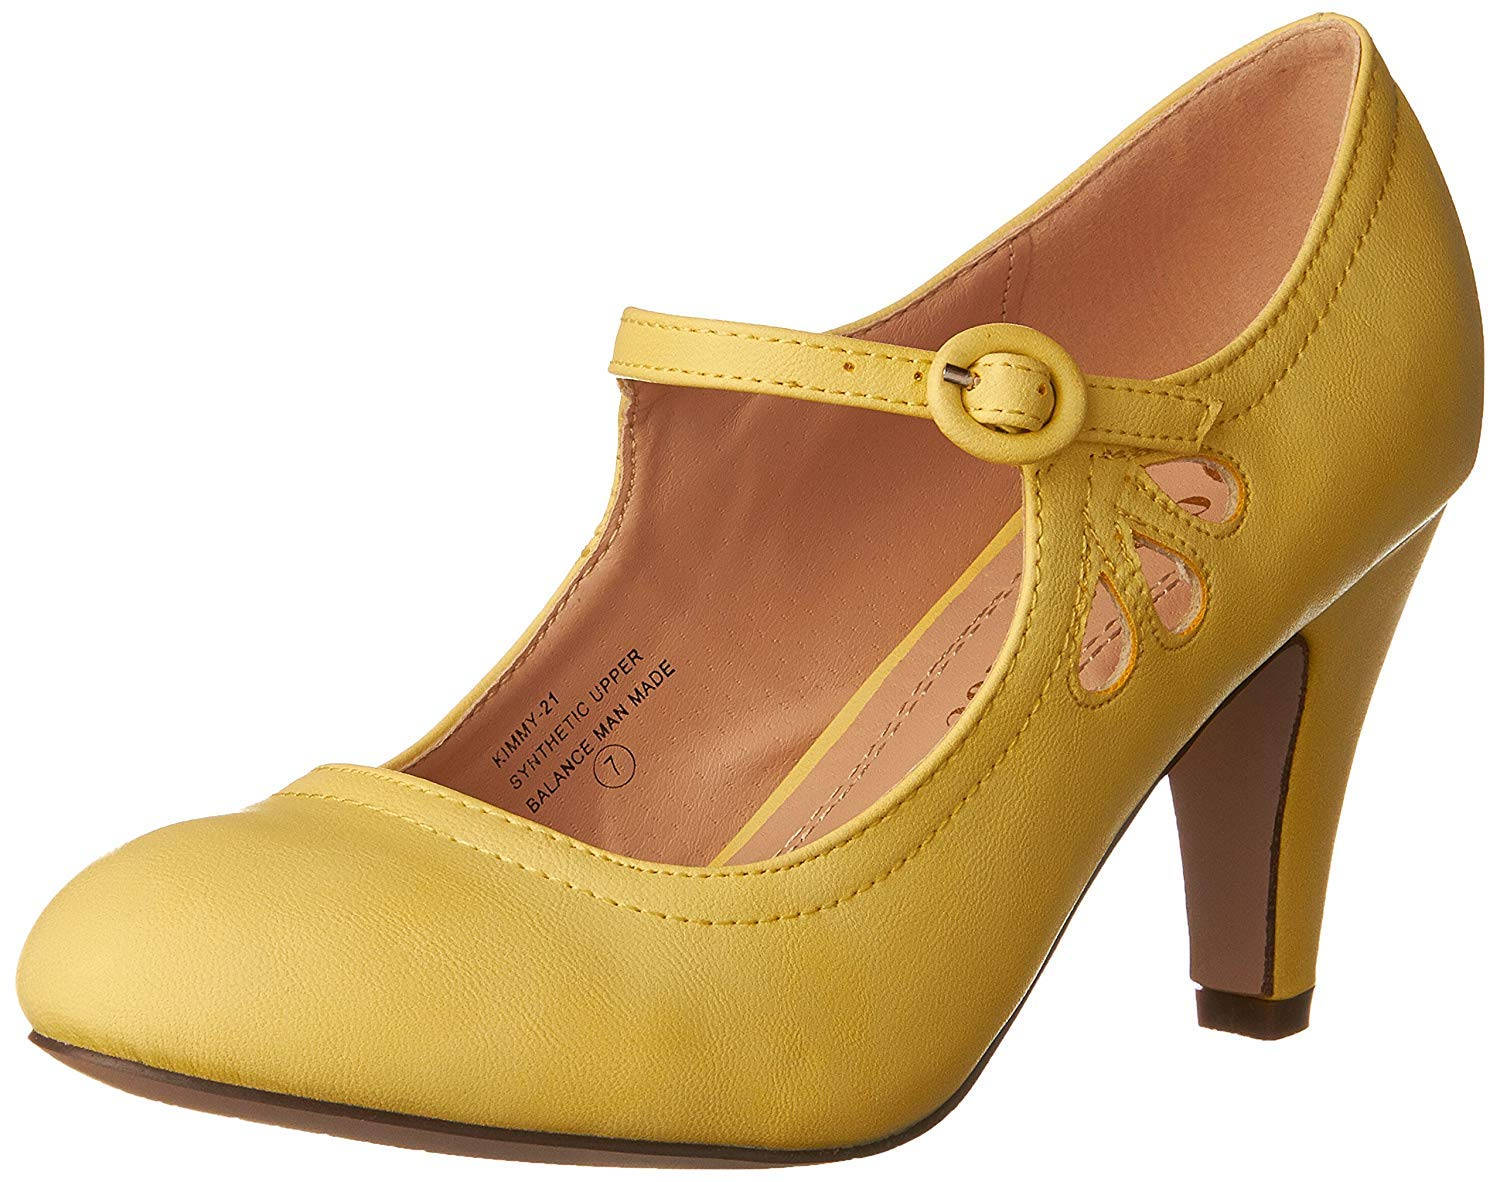 Chase and Chloe Kimmy-21 Mary Jane Teardrop Cutout T-Strap Pump Heel (5.5 M US, Yellow) by Chase & Chloe